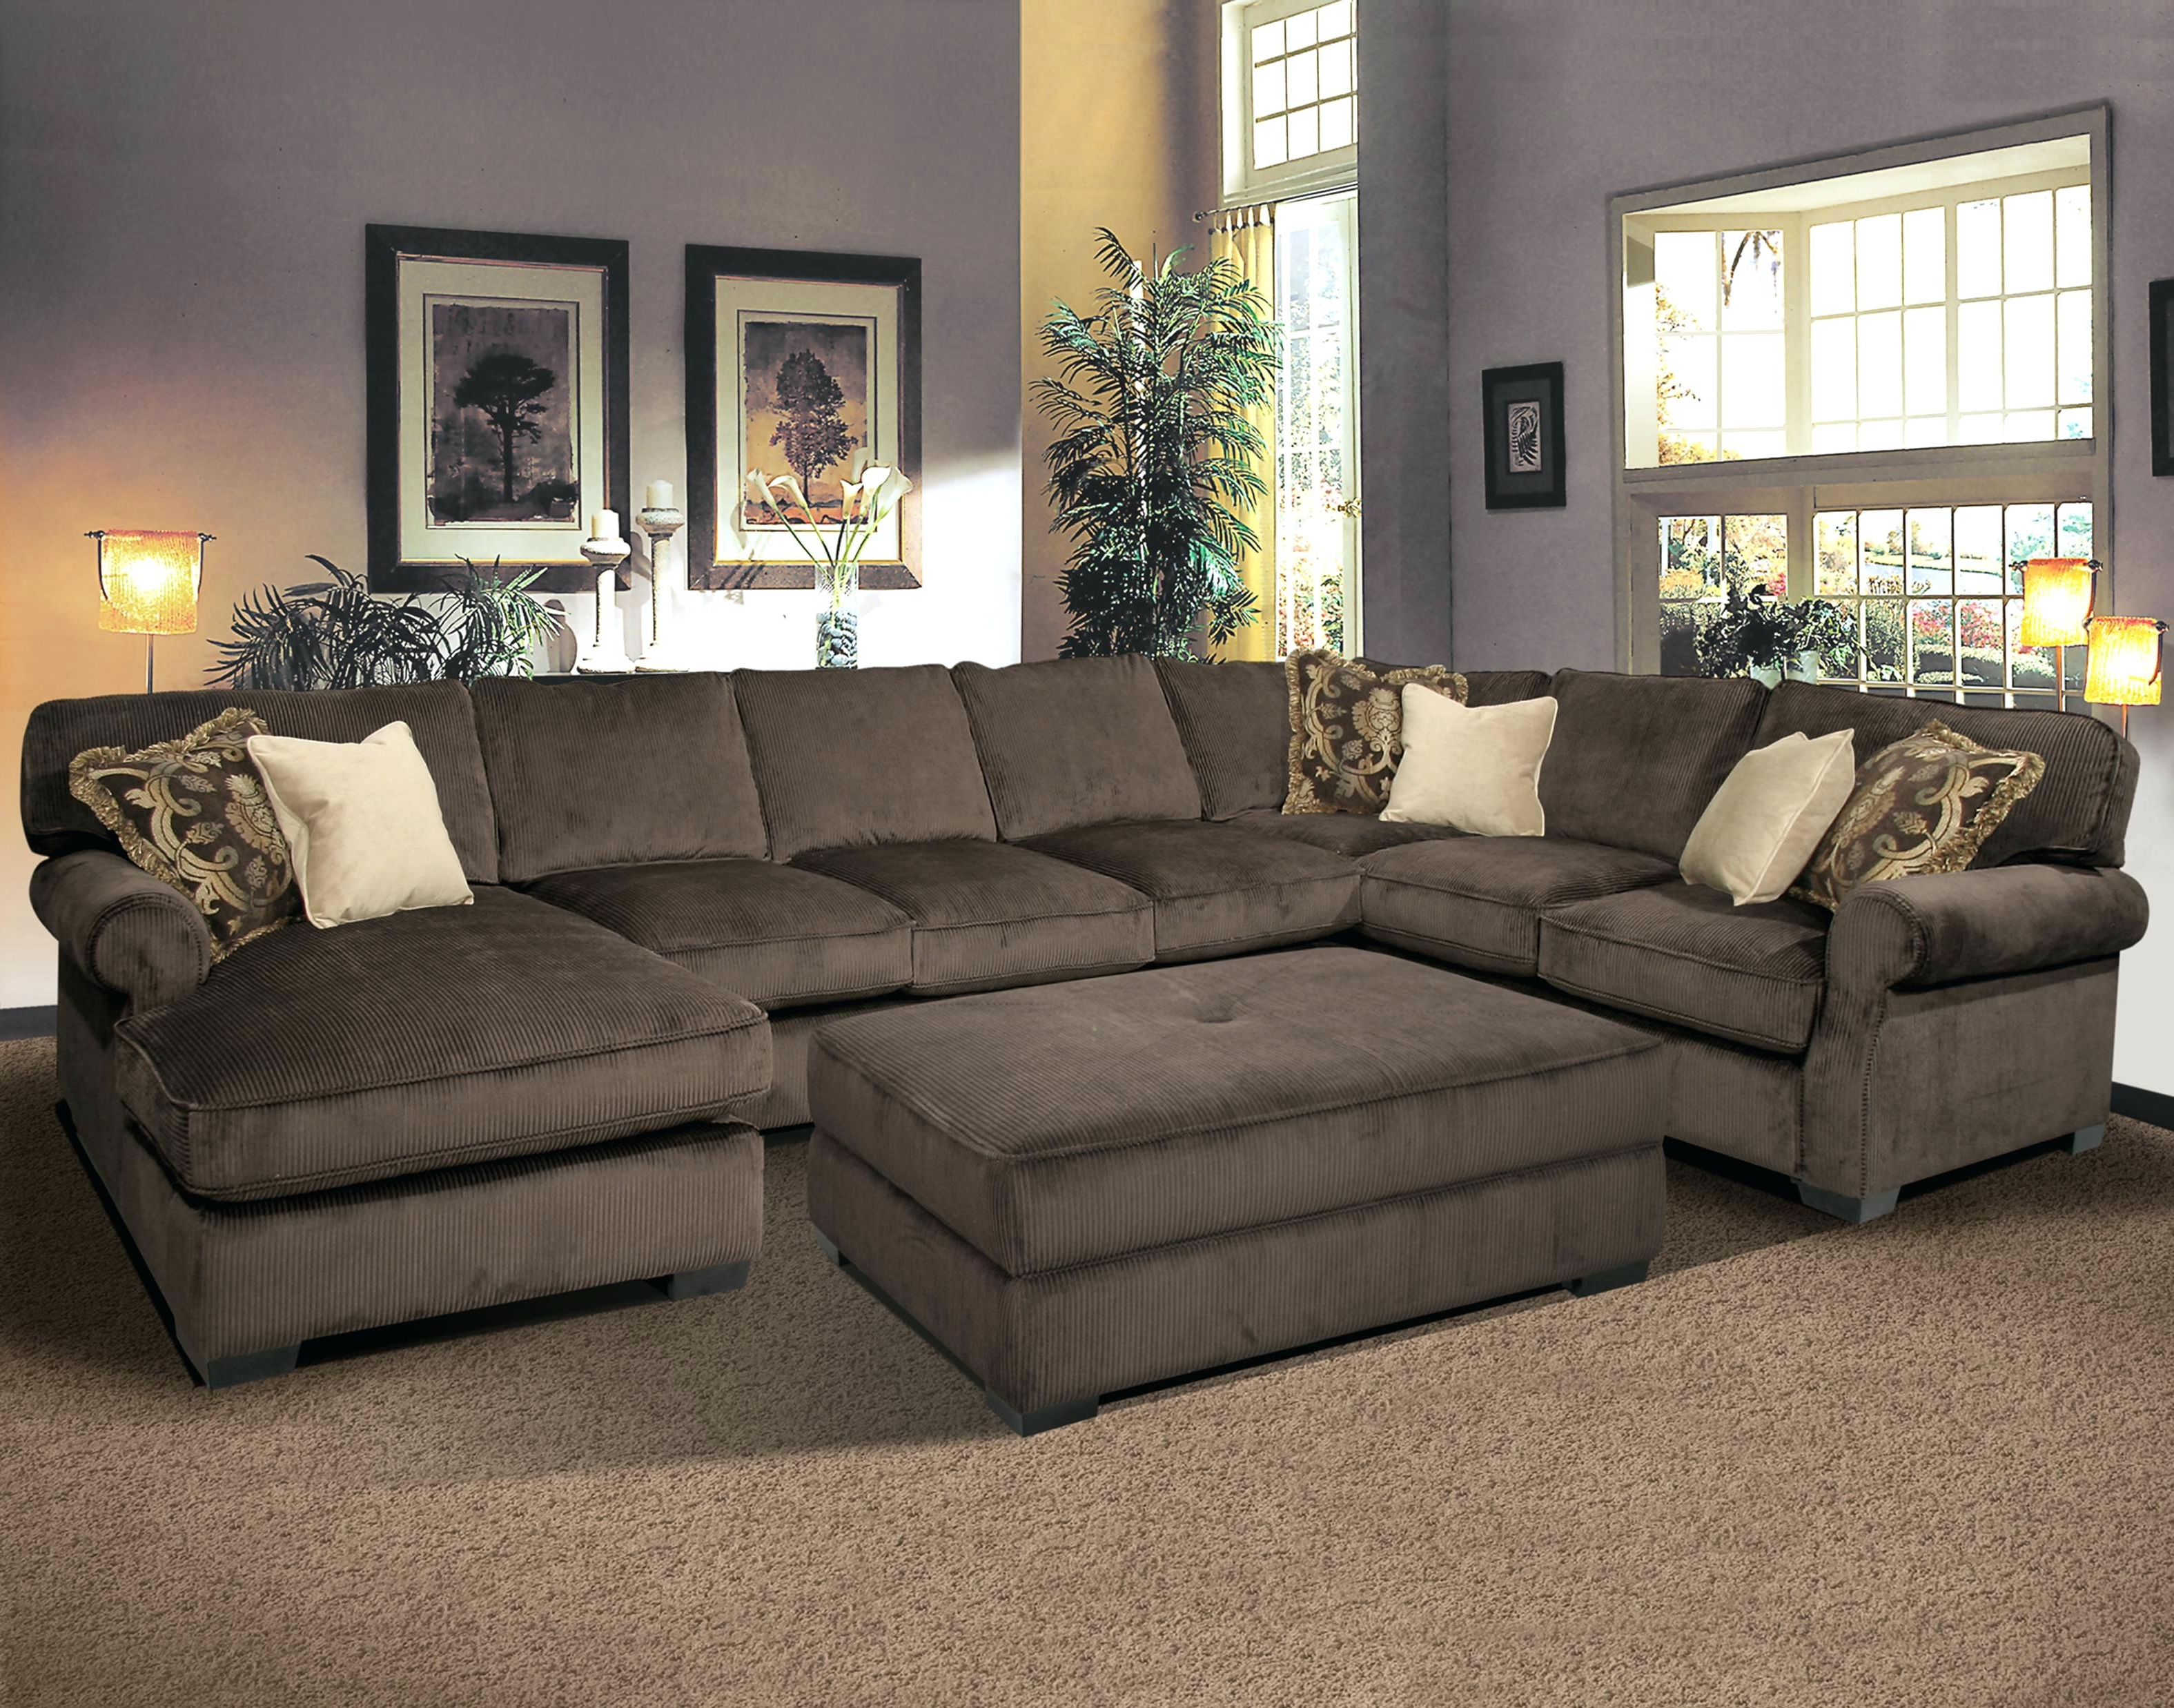 Extra Large Sectional Sofas Leather Couches With Recliners Modern Pertaining To Trendy Huge U Shaped Sectionals (View 7 of 15)